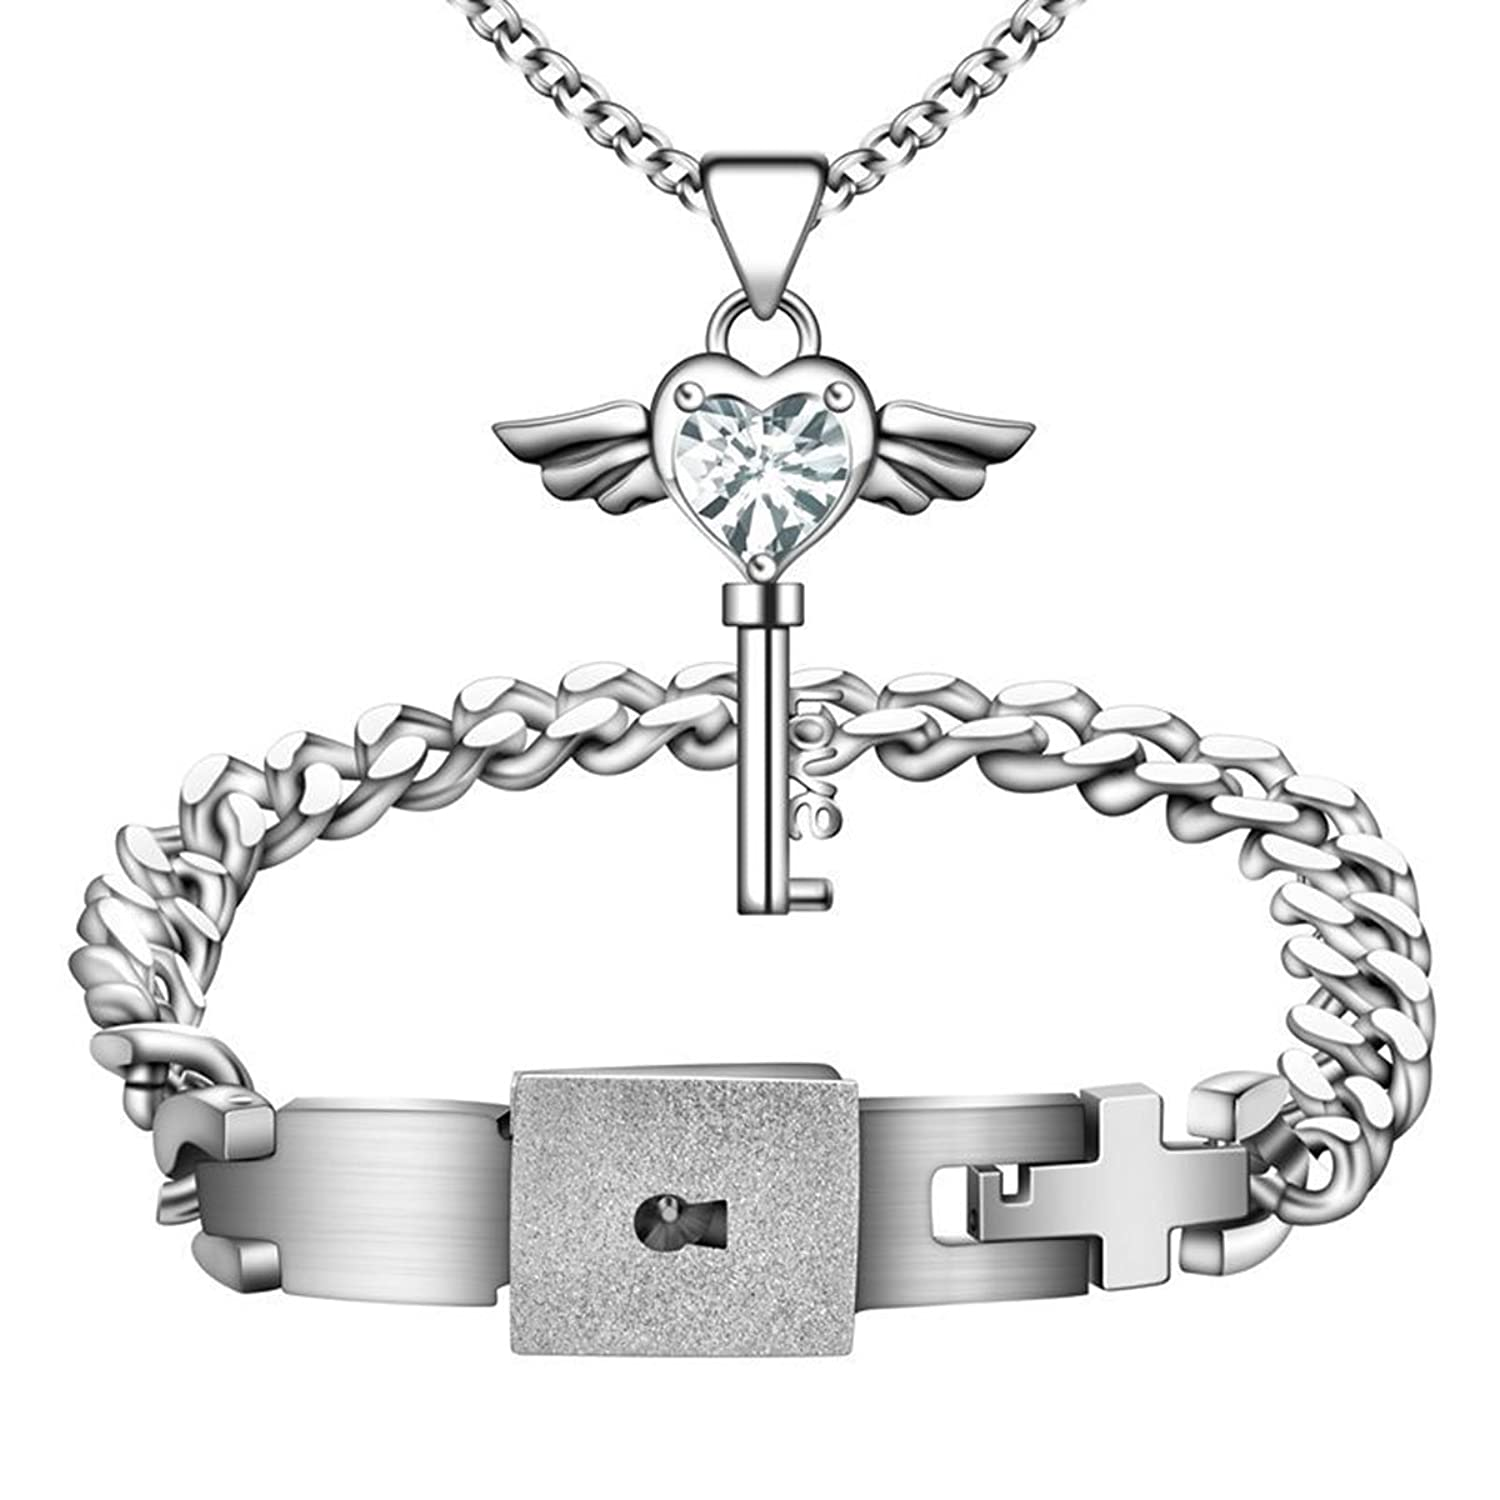 Amazon mlove fashion jewelry titanium steel love heart lock amazon mlove fashion jewelry titanium steel love heart lock bangle bracelet matching angel wings key pendant necklace couples gift jewelry aloadofball Gallery